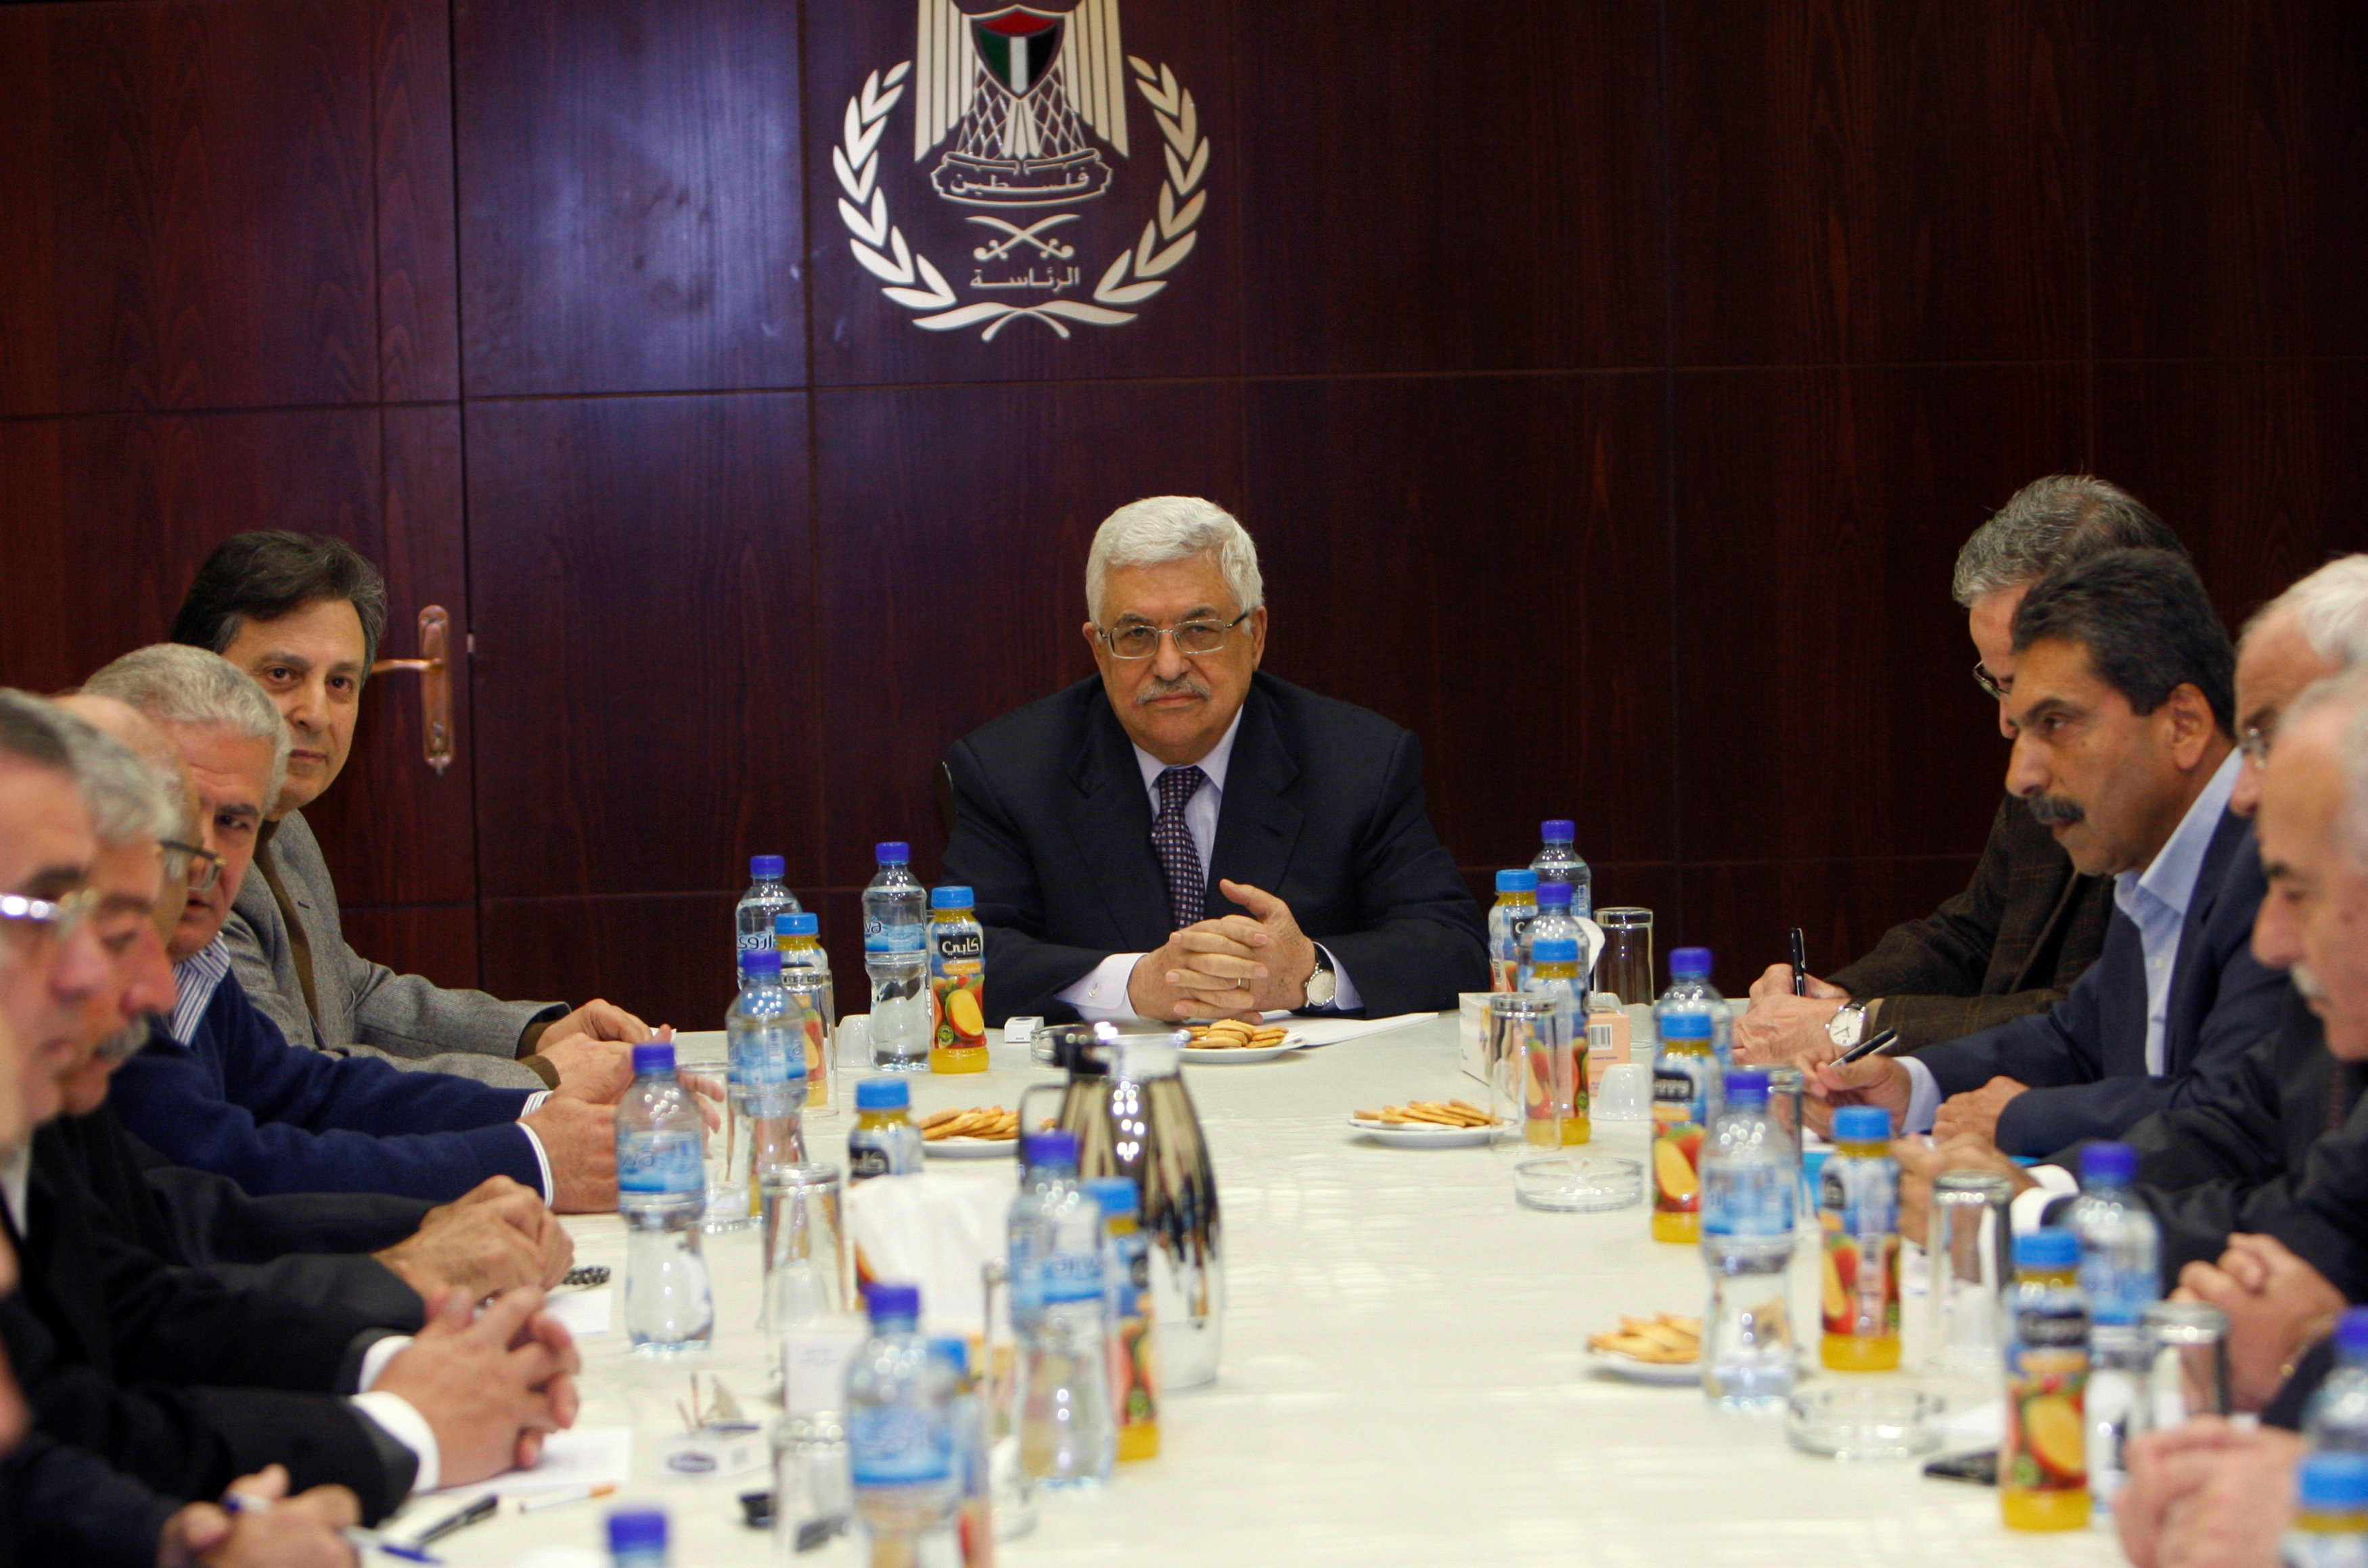 Palestinian President Mahmoud Abbas (C) attends the Fatah Central Committee meeting in the West Bank city of Ramallah January 8, 2011.